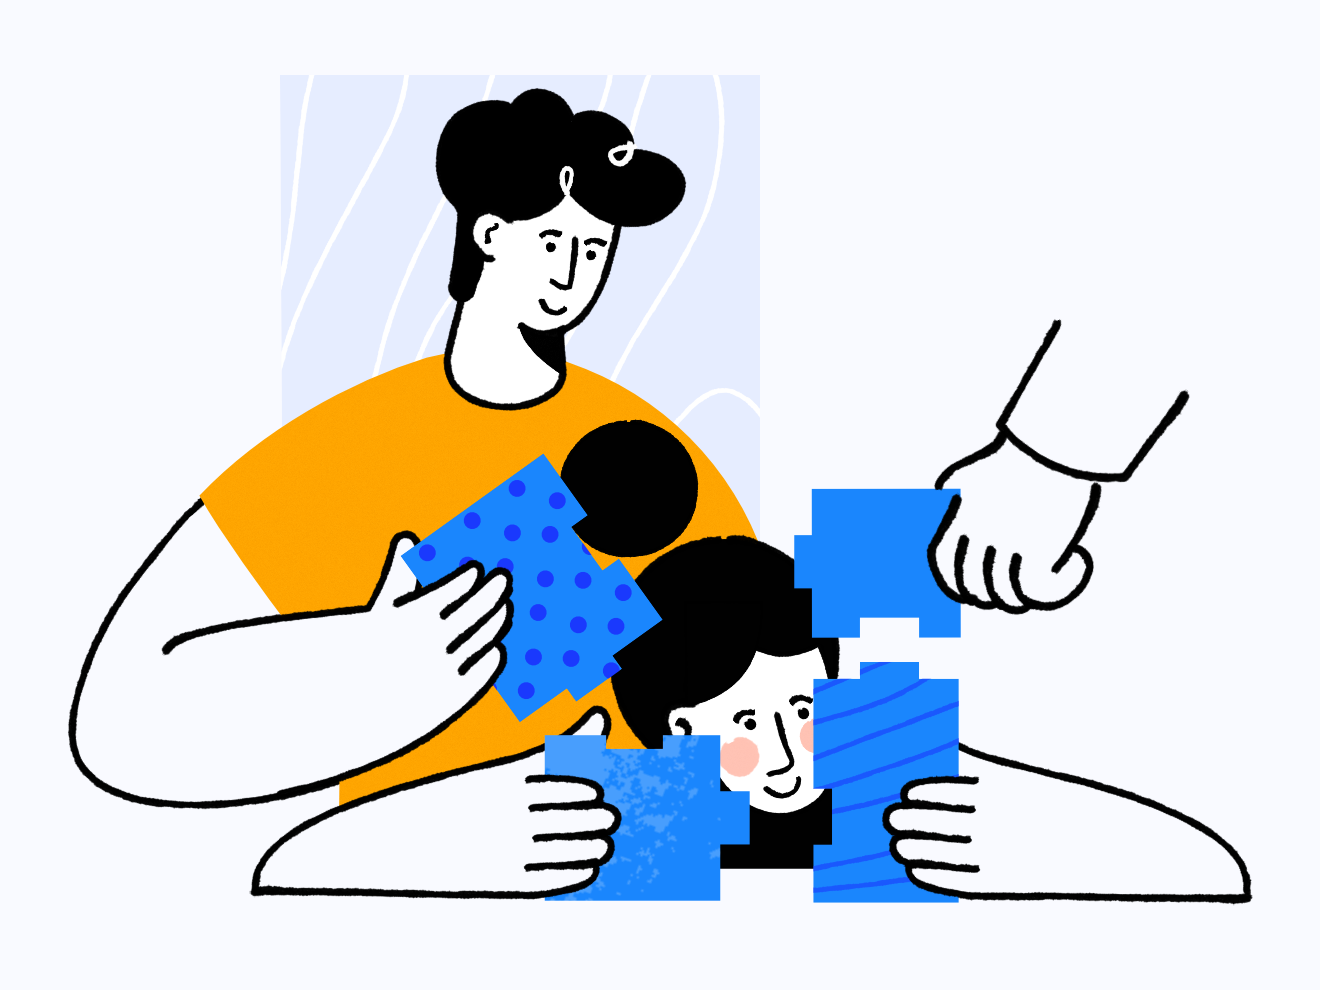 Teamwork teamwork webpage woman man affinity designer clean character illustration vector